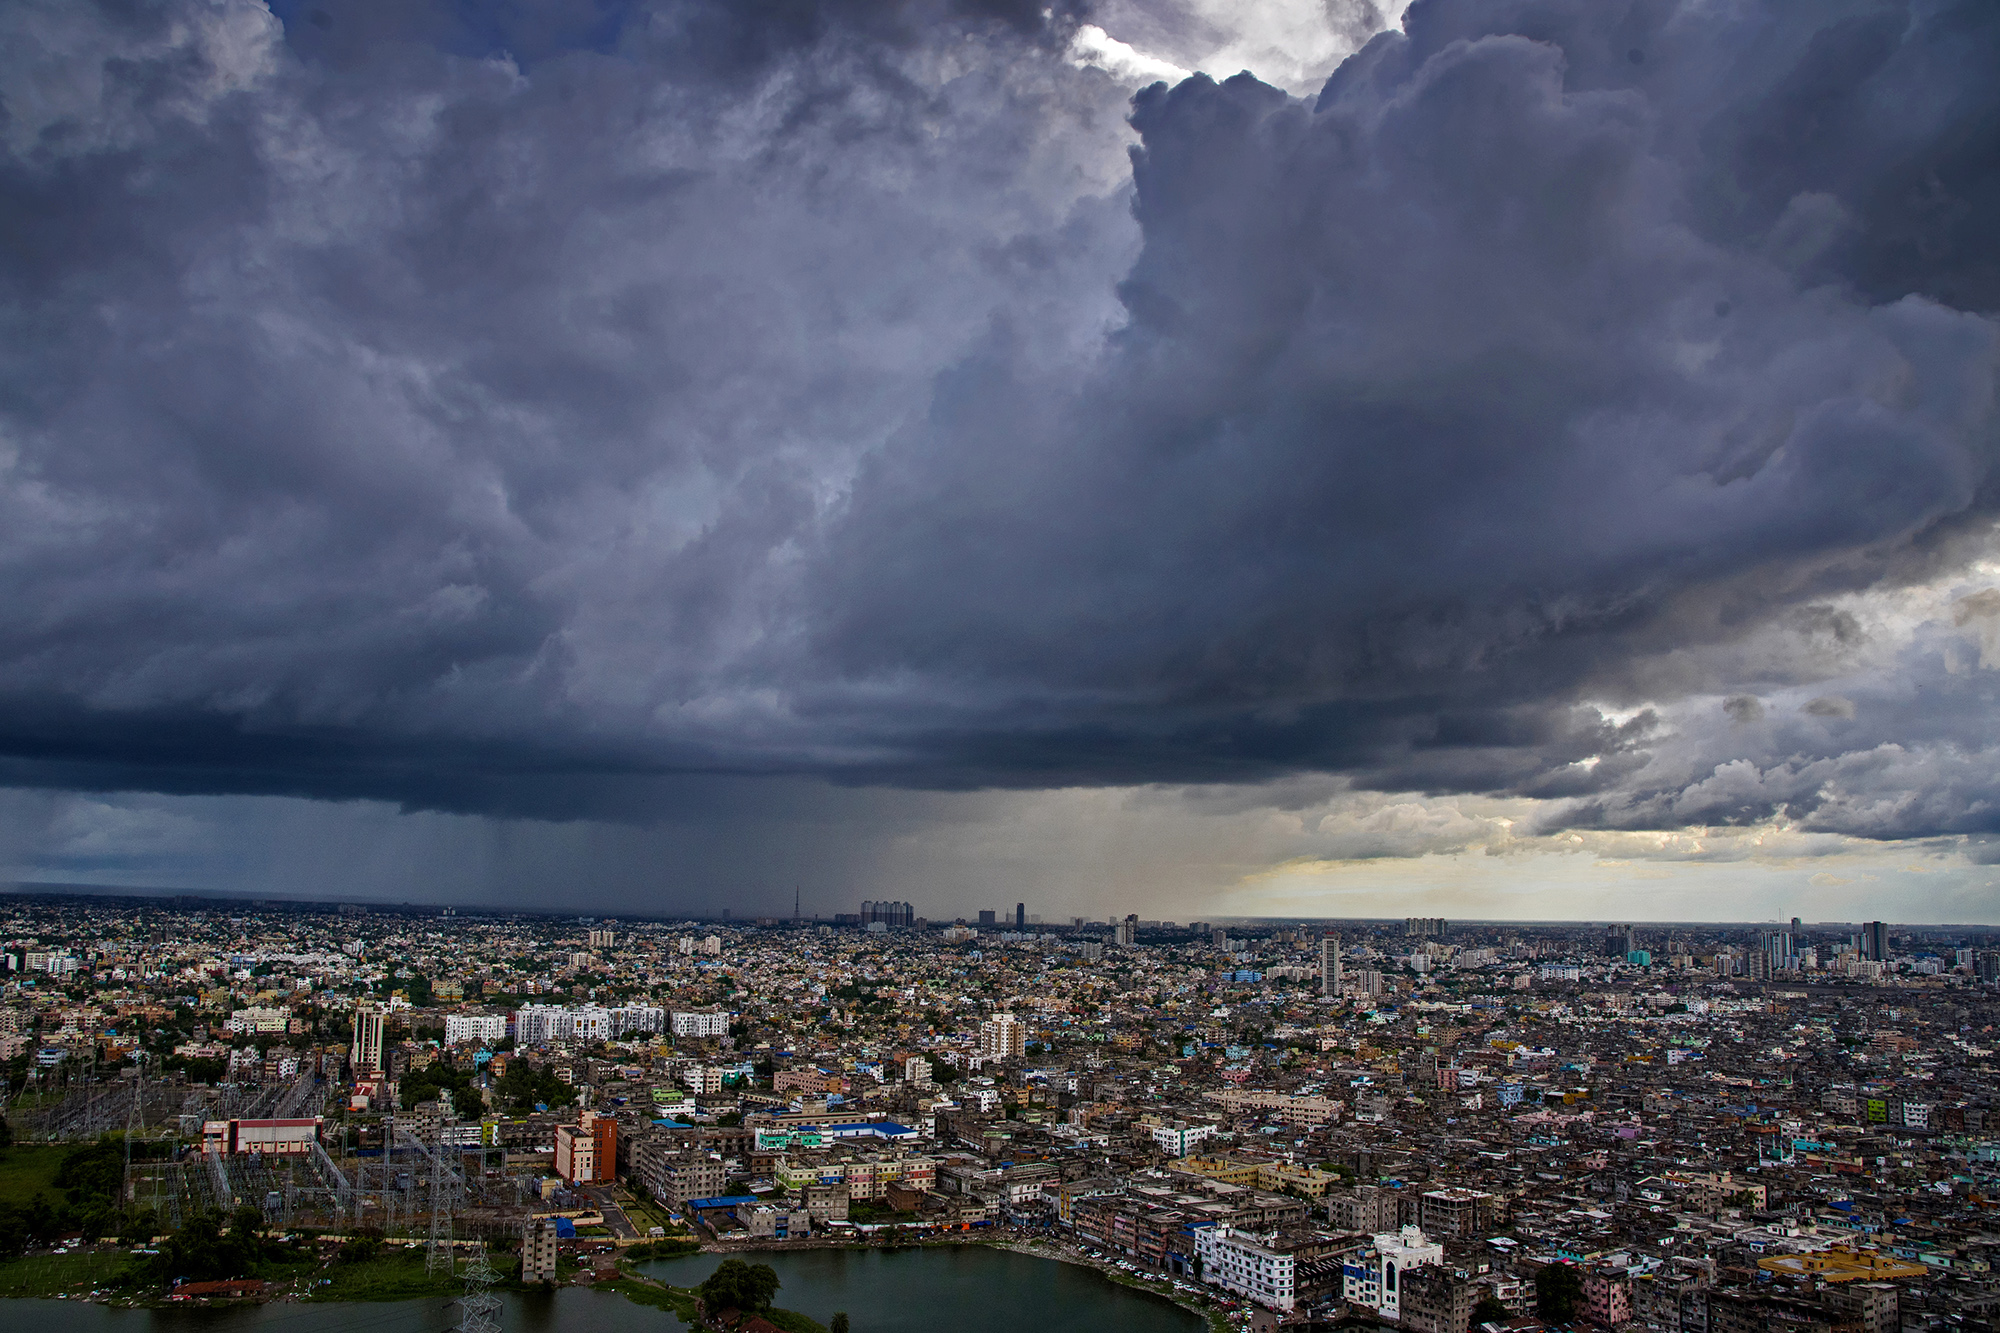 Dark monsoon clouds gather over the City of joy.